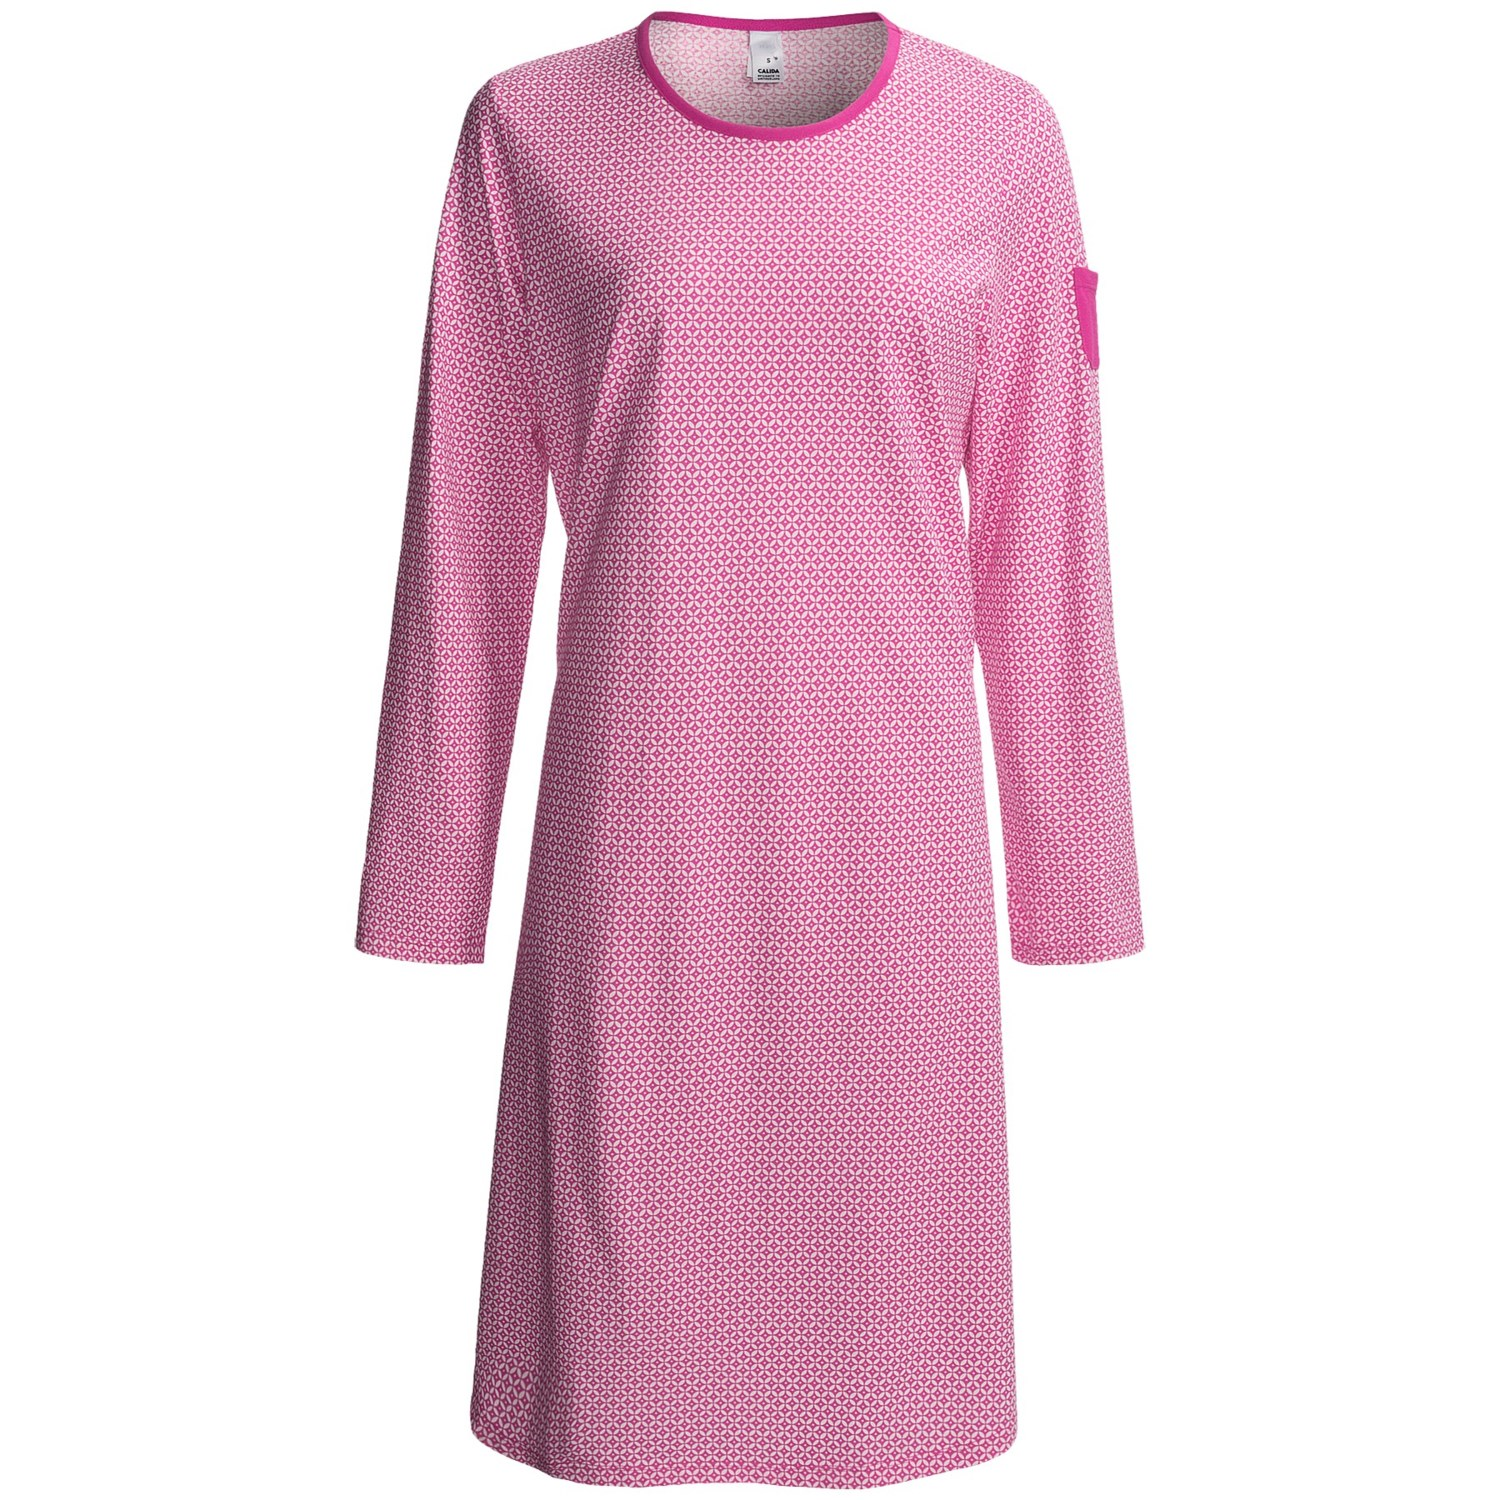 Dark pink floral print satin 'Elegant' long sleeve nightshirt Save. Was £ Now £ Lounge & Sleep Blue polka dot print cotton 3/4 length sleeve nightshirt Blue womens plus supima long sleeve calf-length nightdress Save. Was £ Now £ Lisca Black 'Caroline' long sleeve .